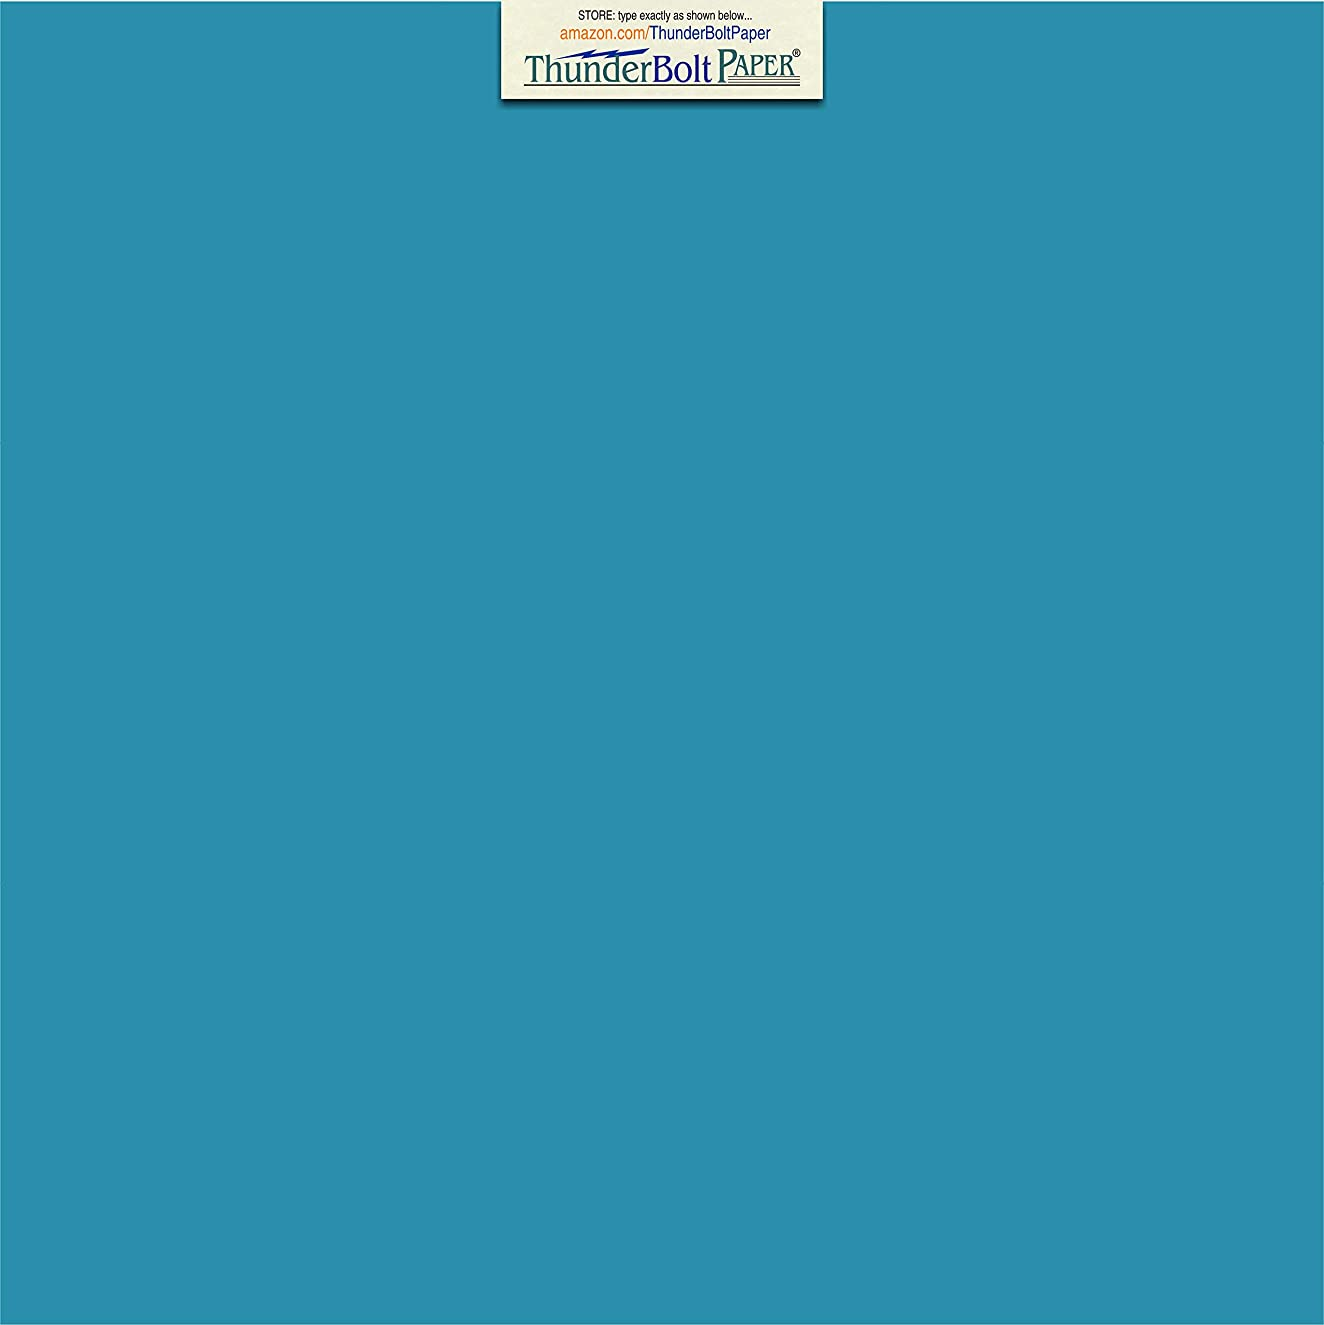 100 Bright Aqua Blue Cardstock 65lb Cover Paper 12 X 12 Inches Scrapbook Album Cover Size - 65 lb/pound Light Weight Cardstock - Quality Smooth Paper Surface